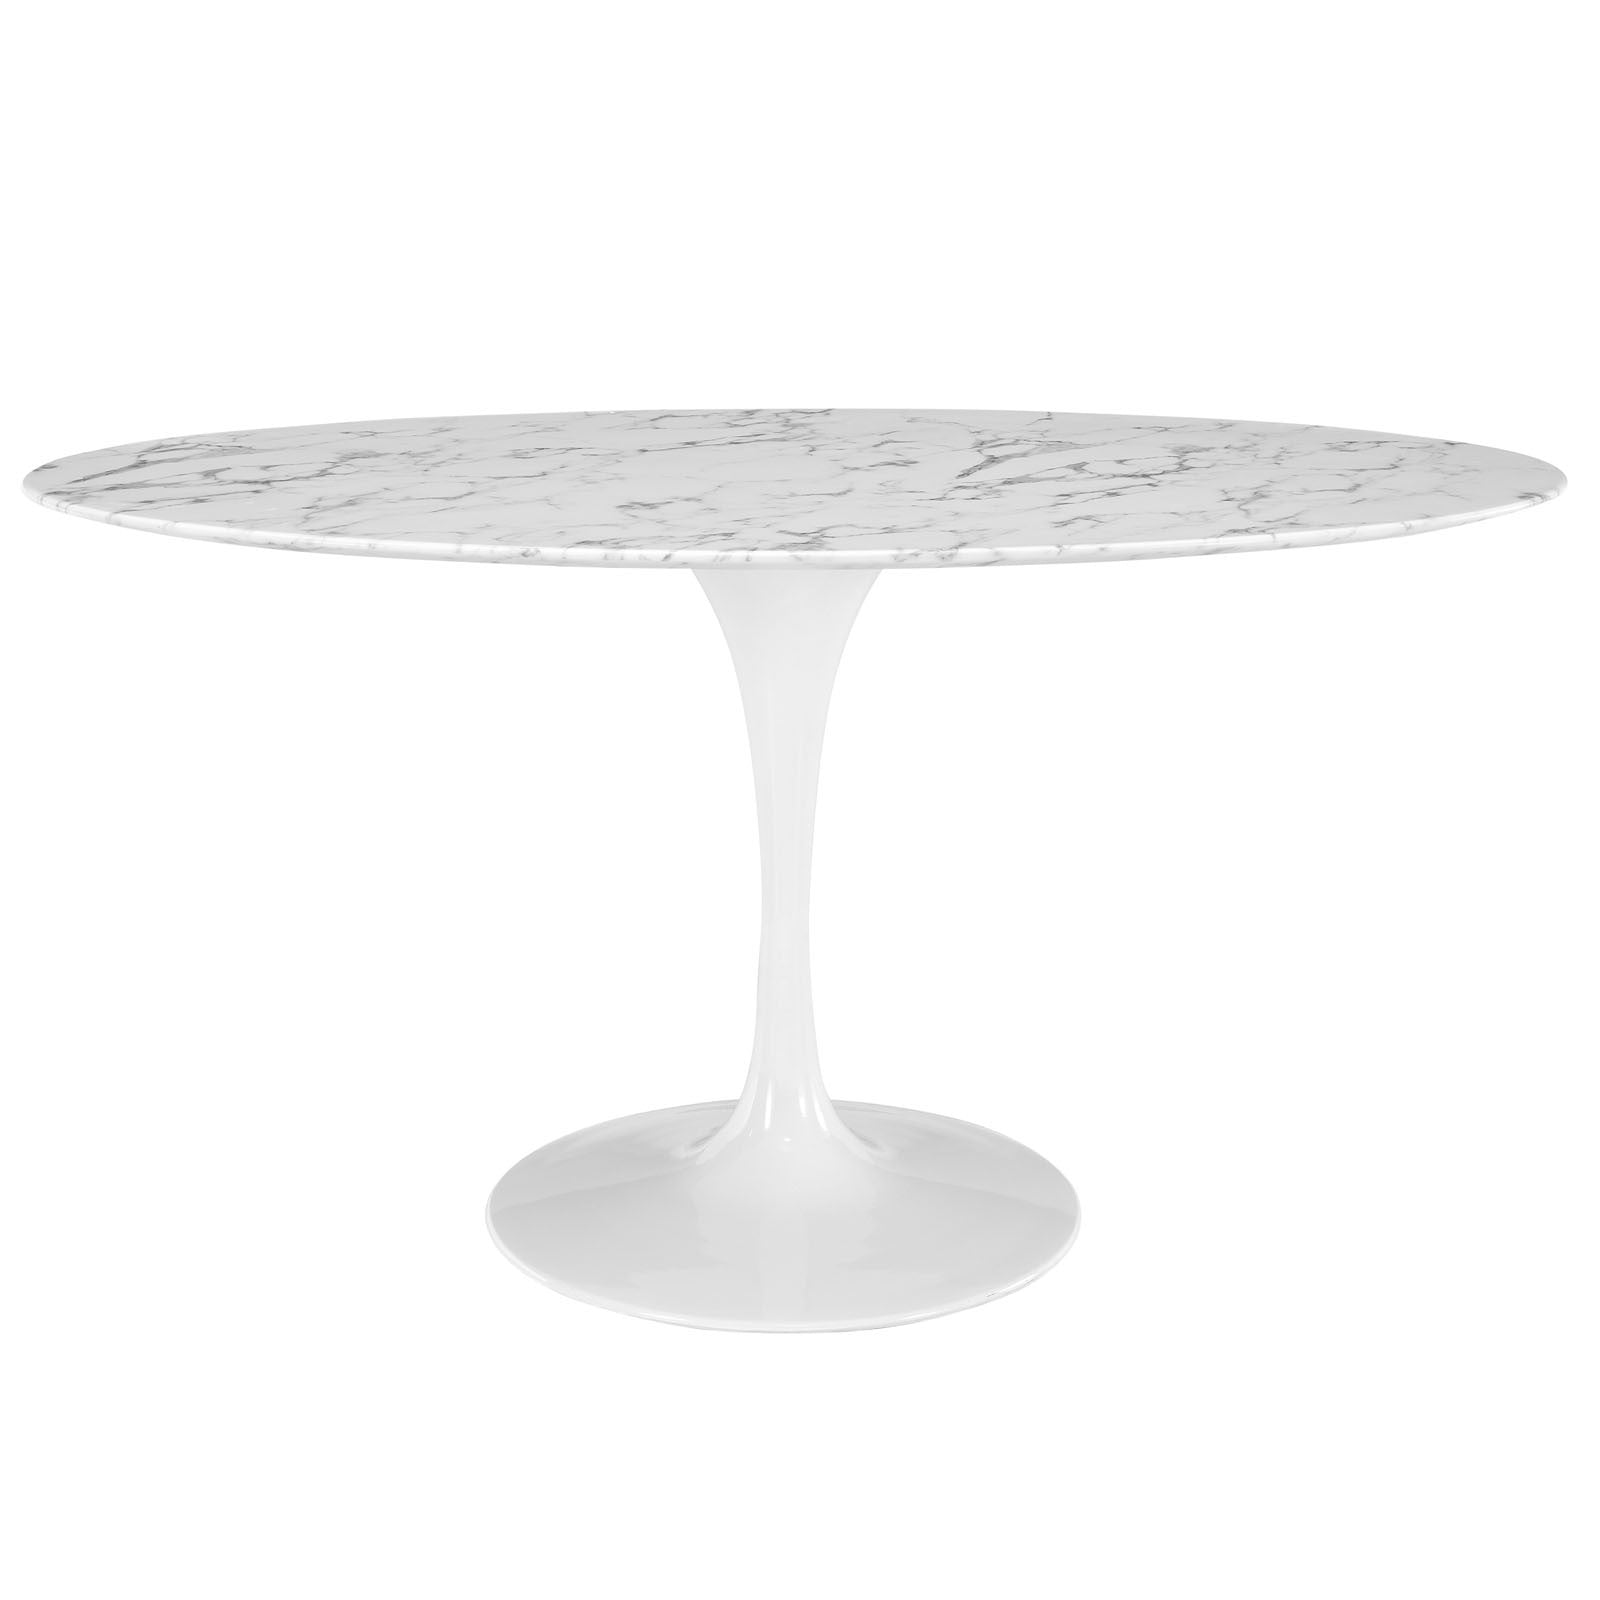 Oval marble dining table -  Tulip Style 60 Oval Marble Dining Table Emfurn 4